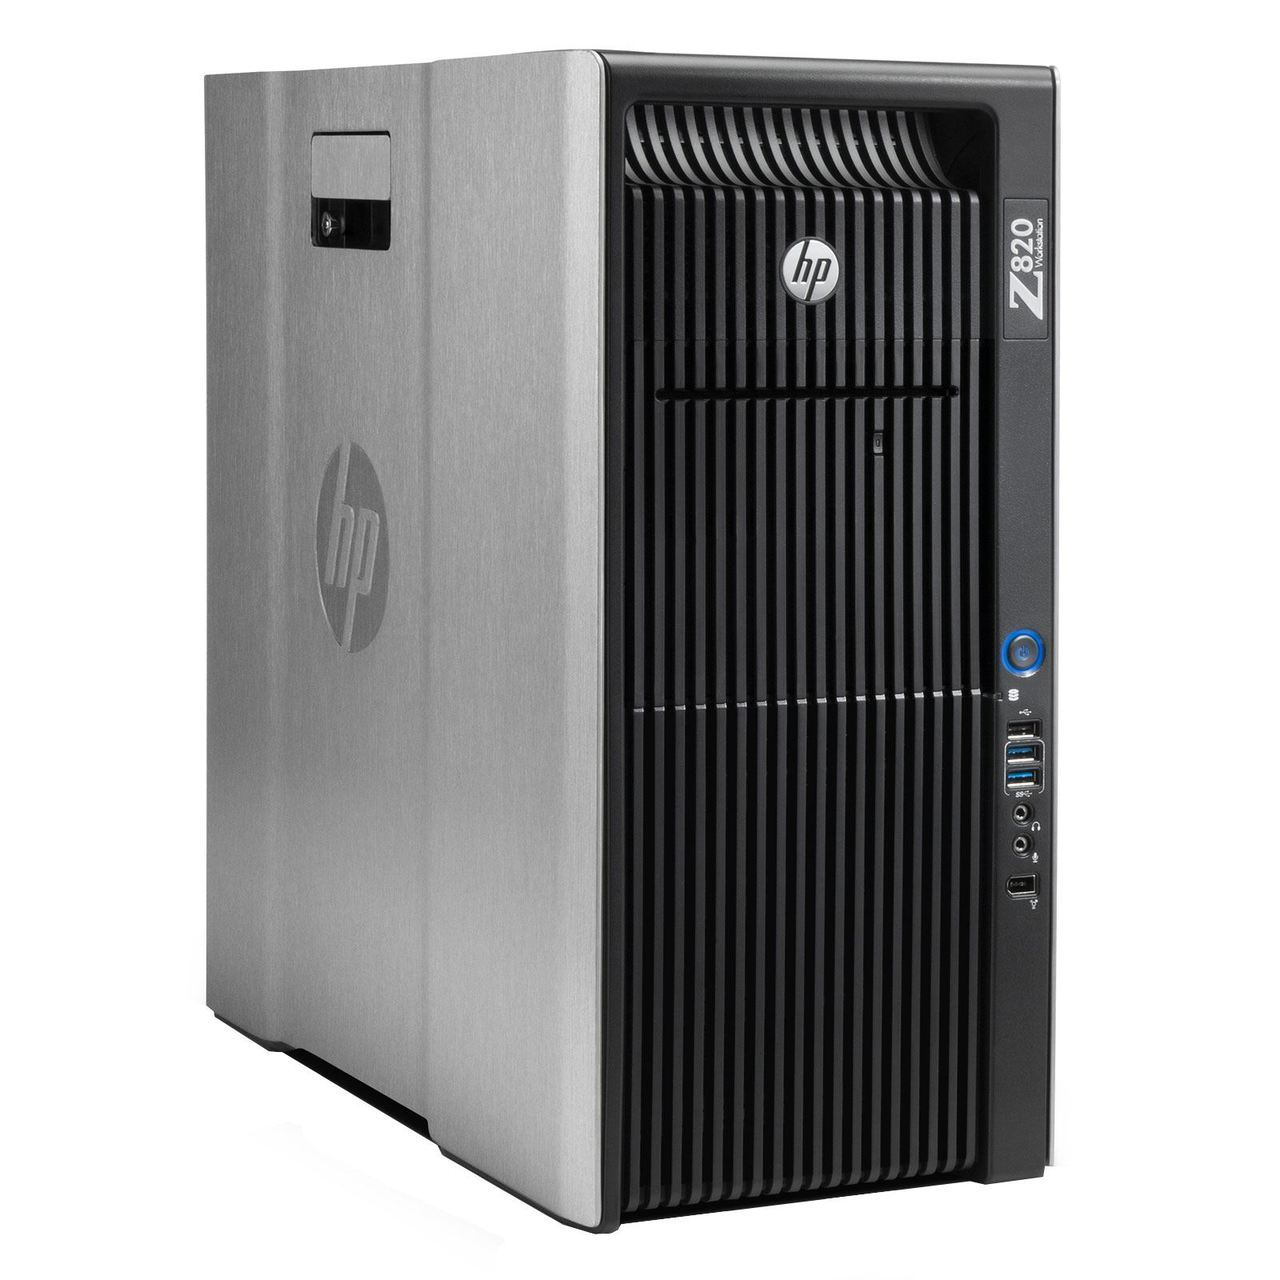 中古 HP Z820 Workstation E5-2643v3 2CPU Win7 K4000